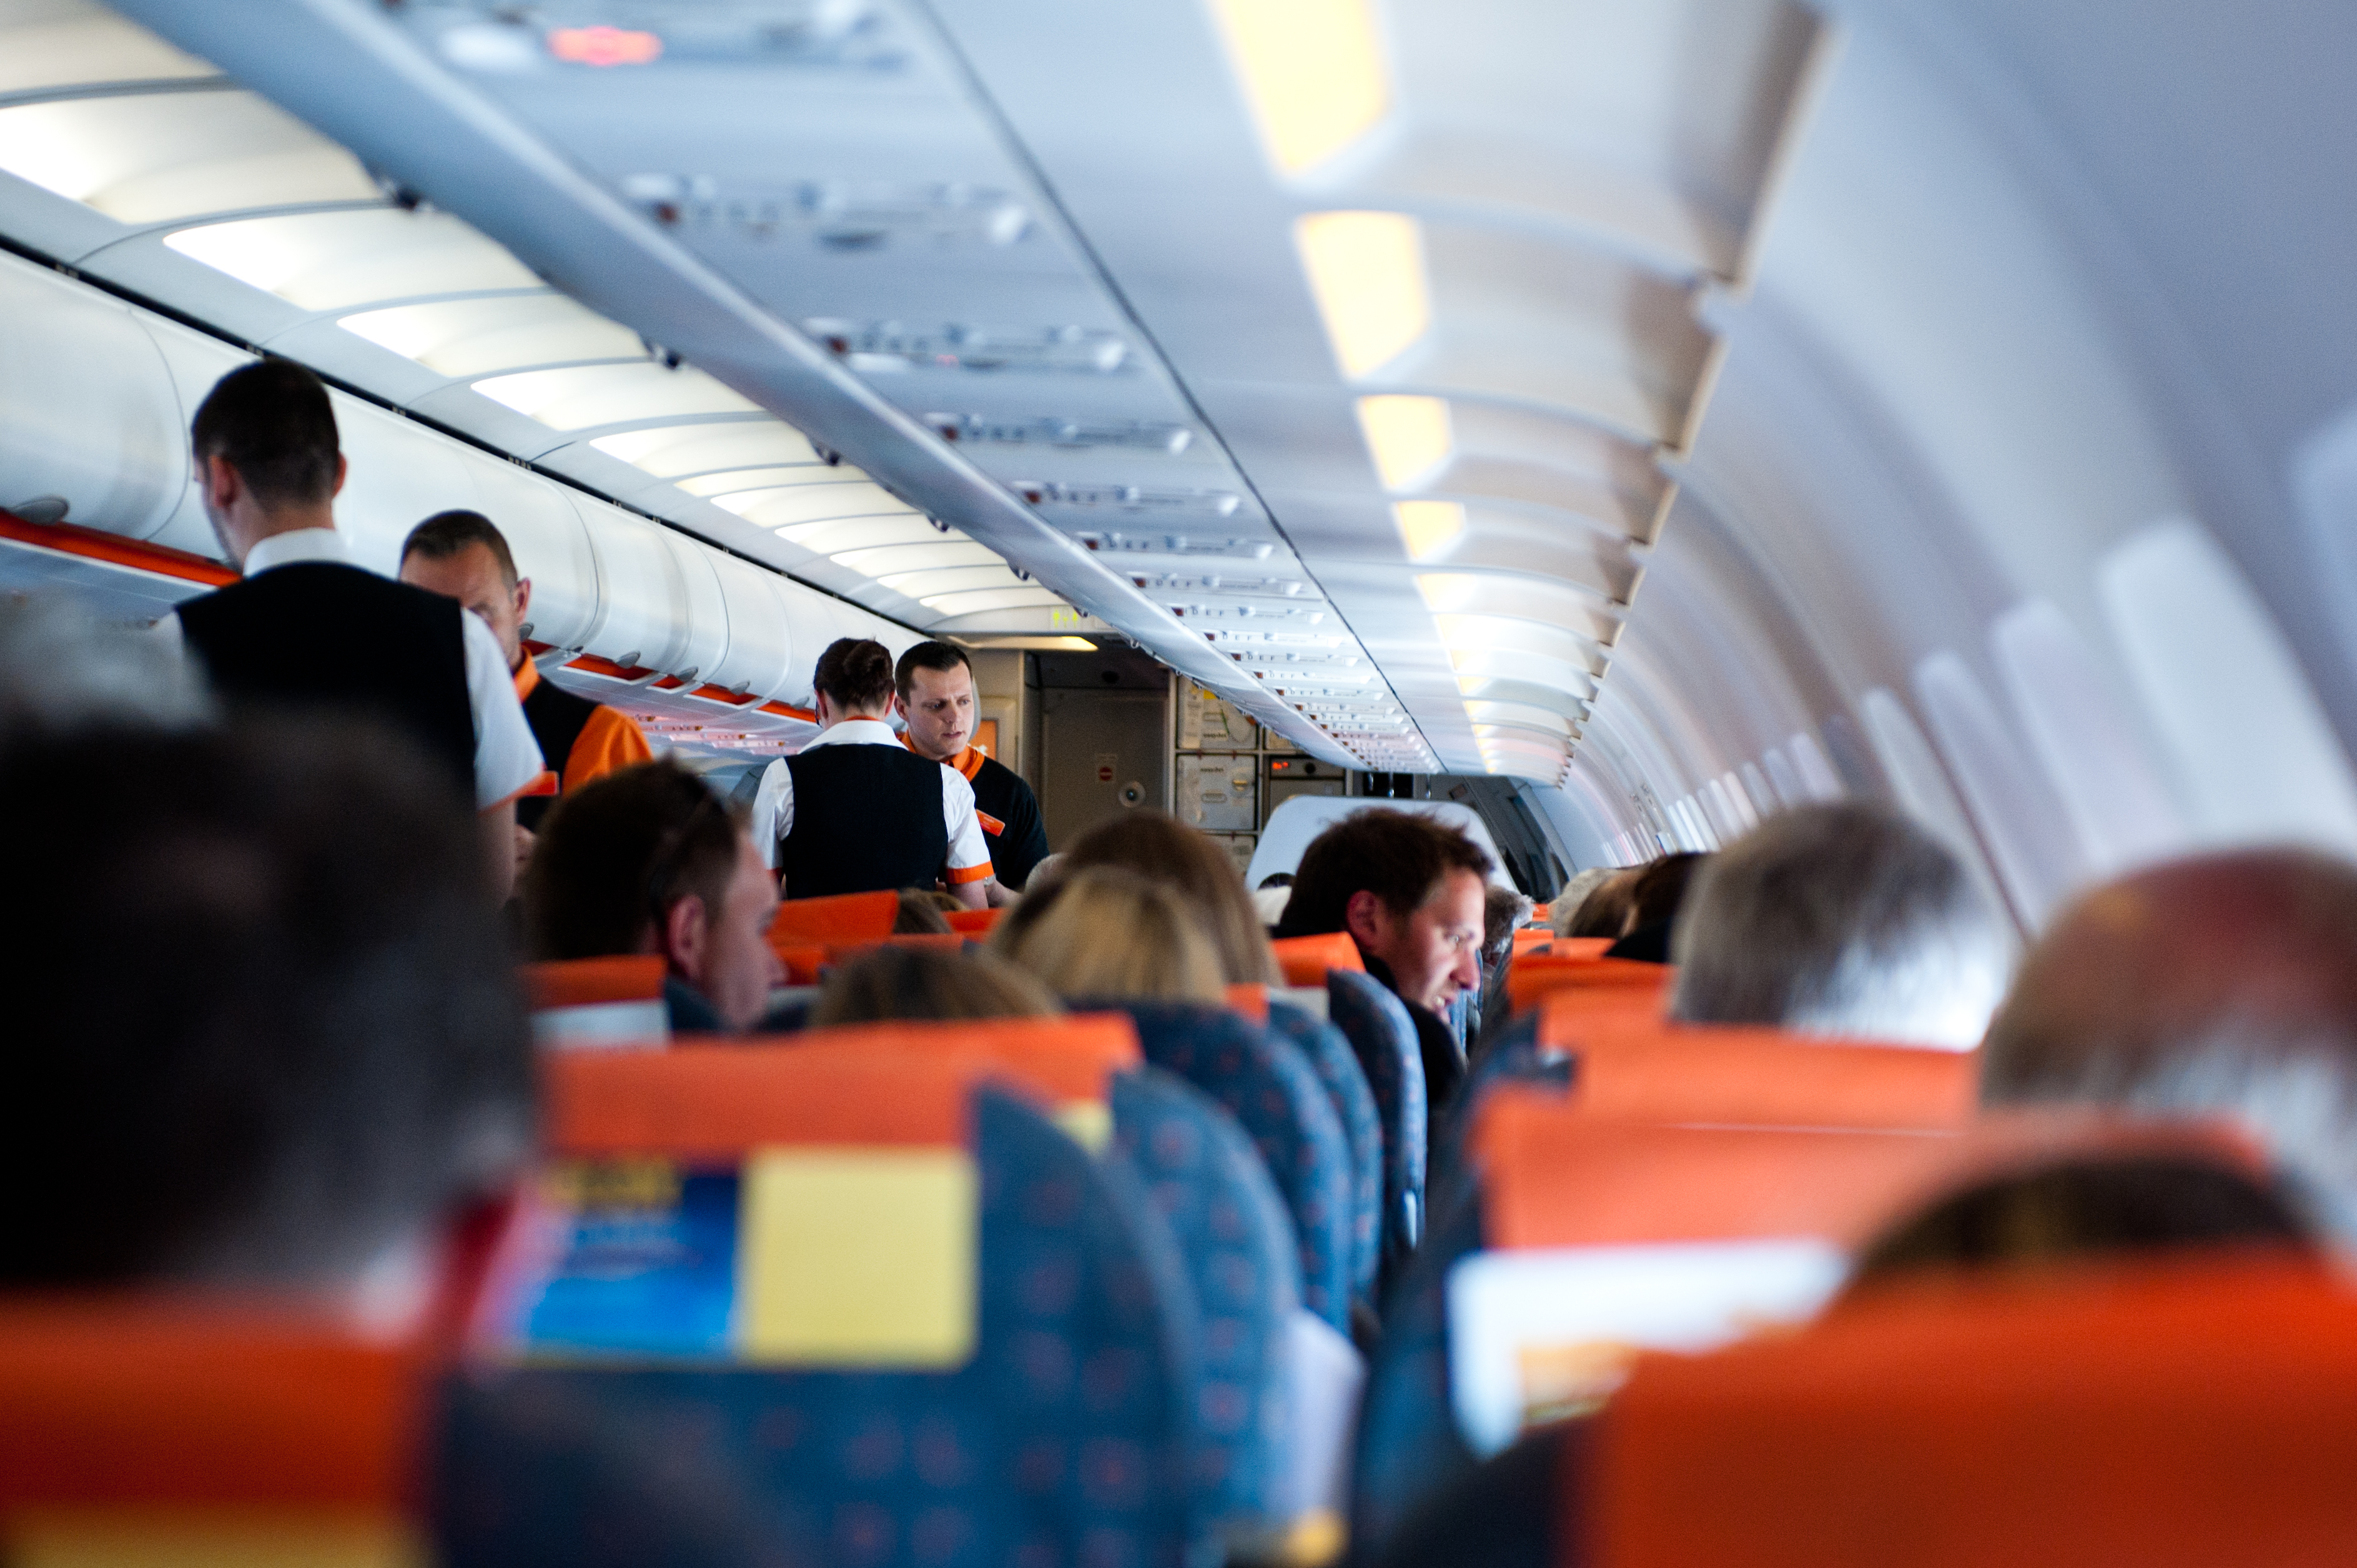 flying | flying fauxpas | traveling | vacation | flying tips | traveling tips | first time flyers | tips for first time flyers